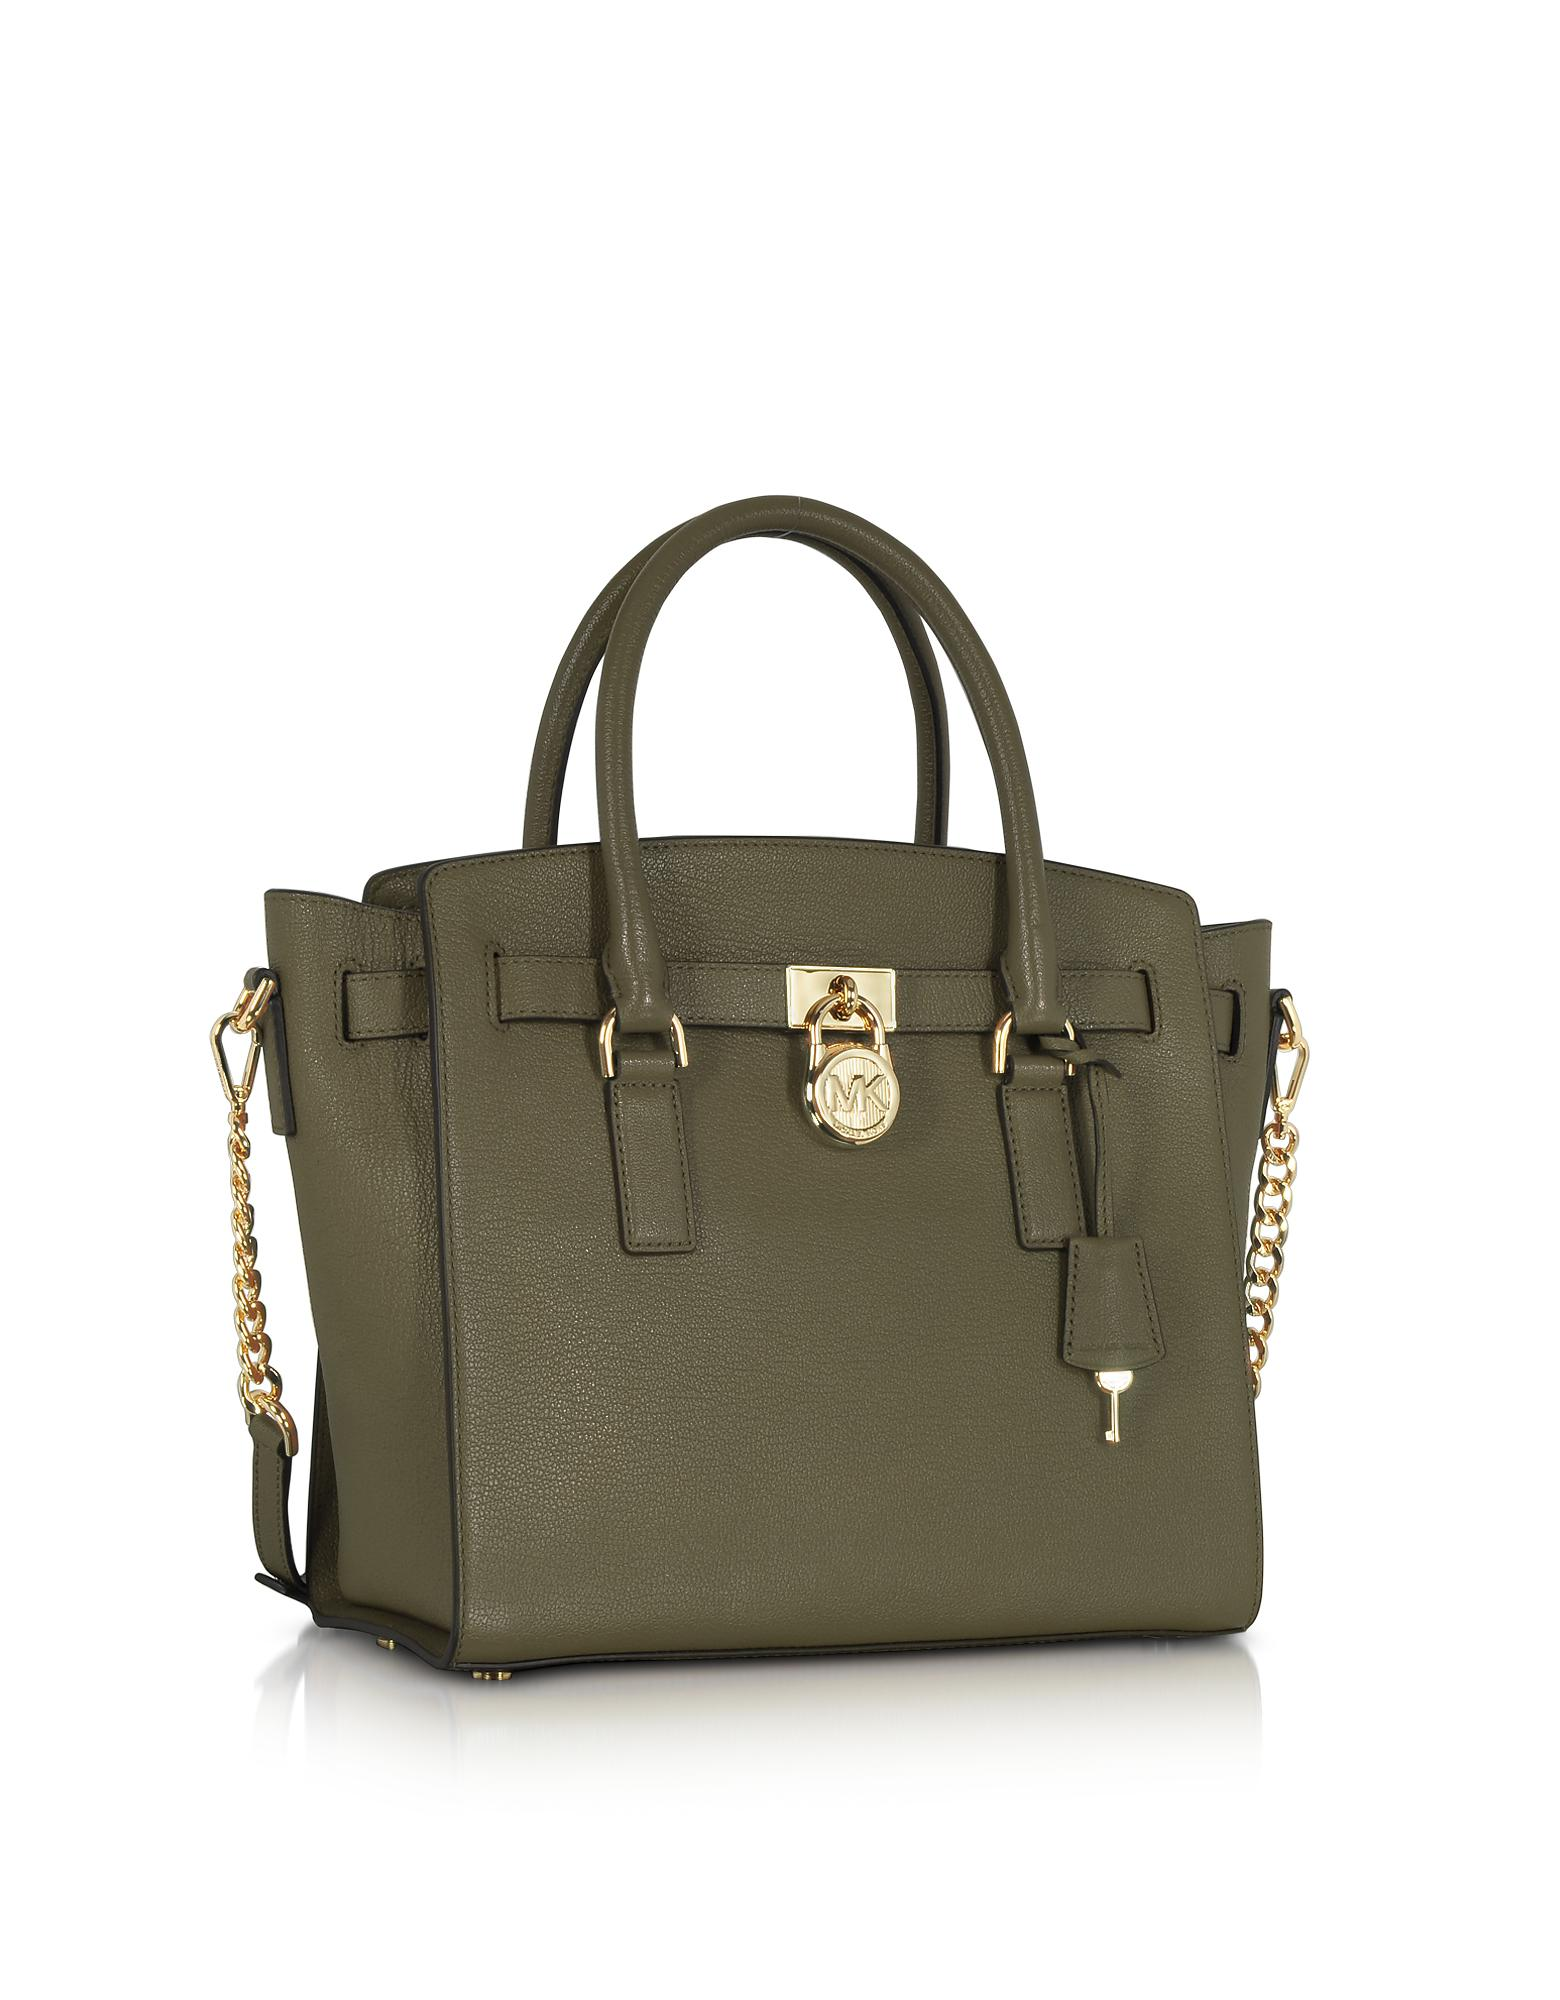 7640b6fe7981 Lyst - Michael Kors Hamilton Large Olive Green Pebbled Leather ...